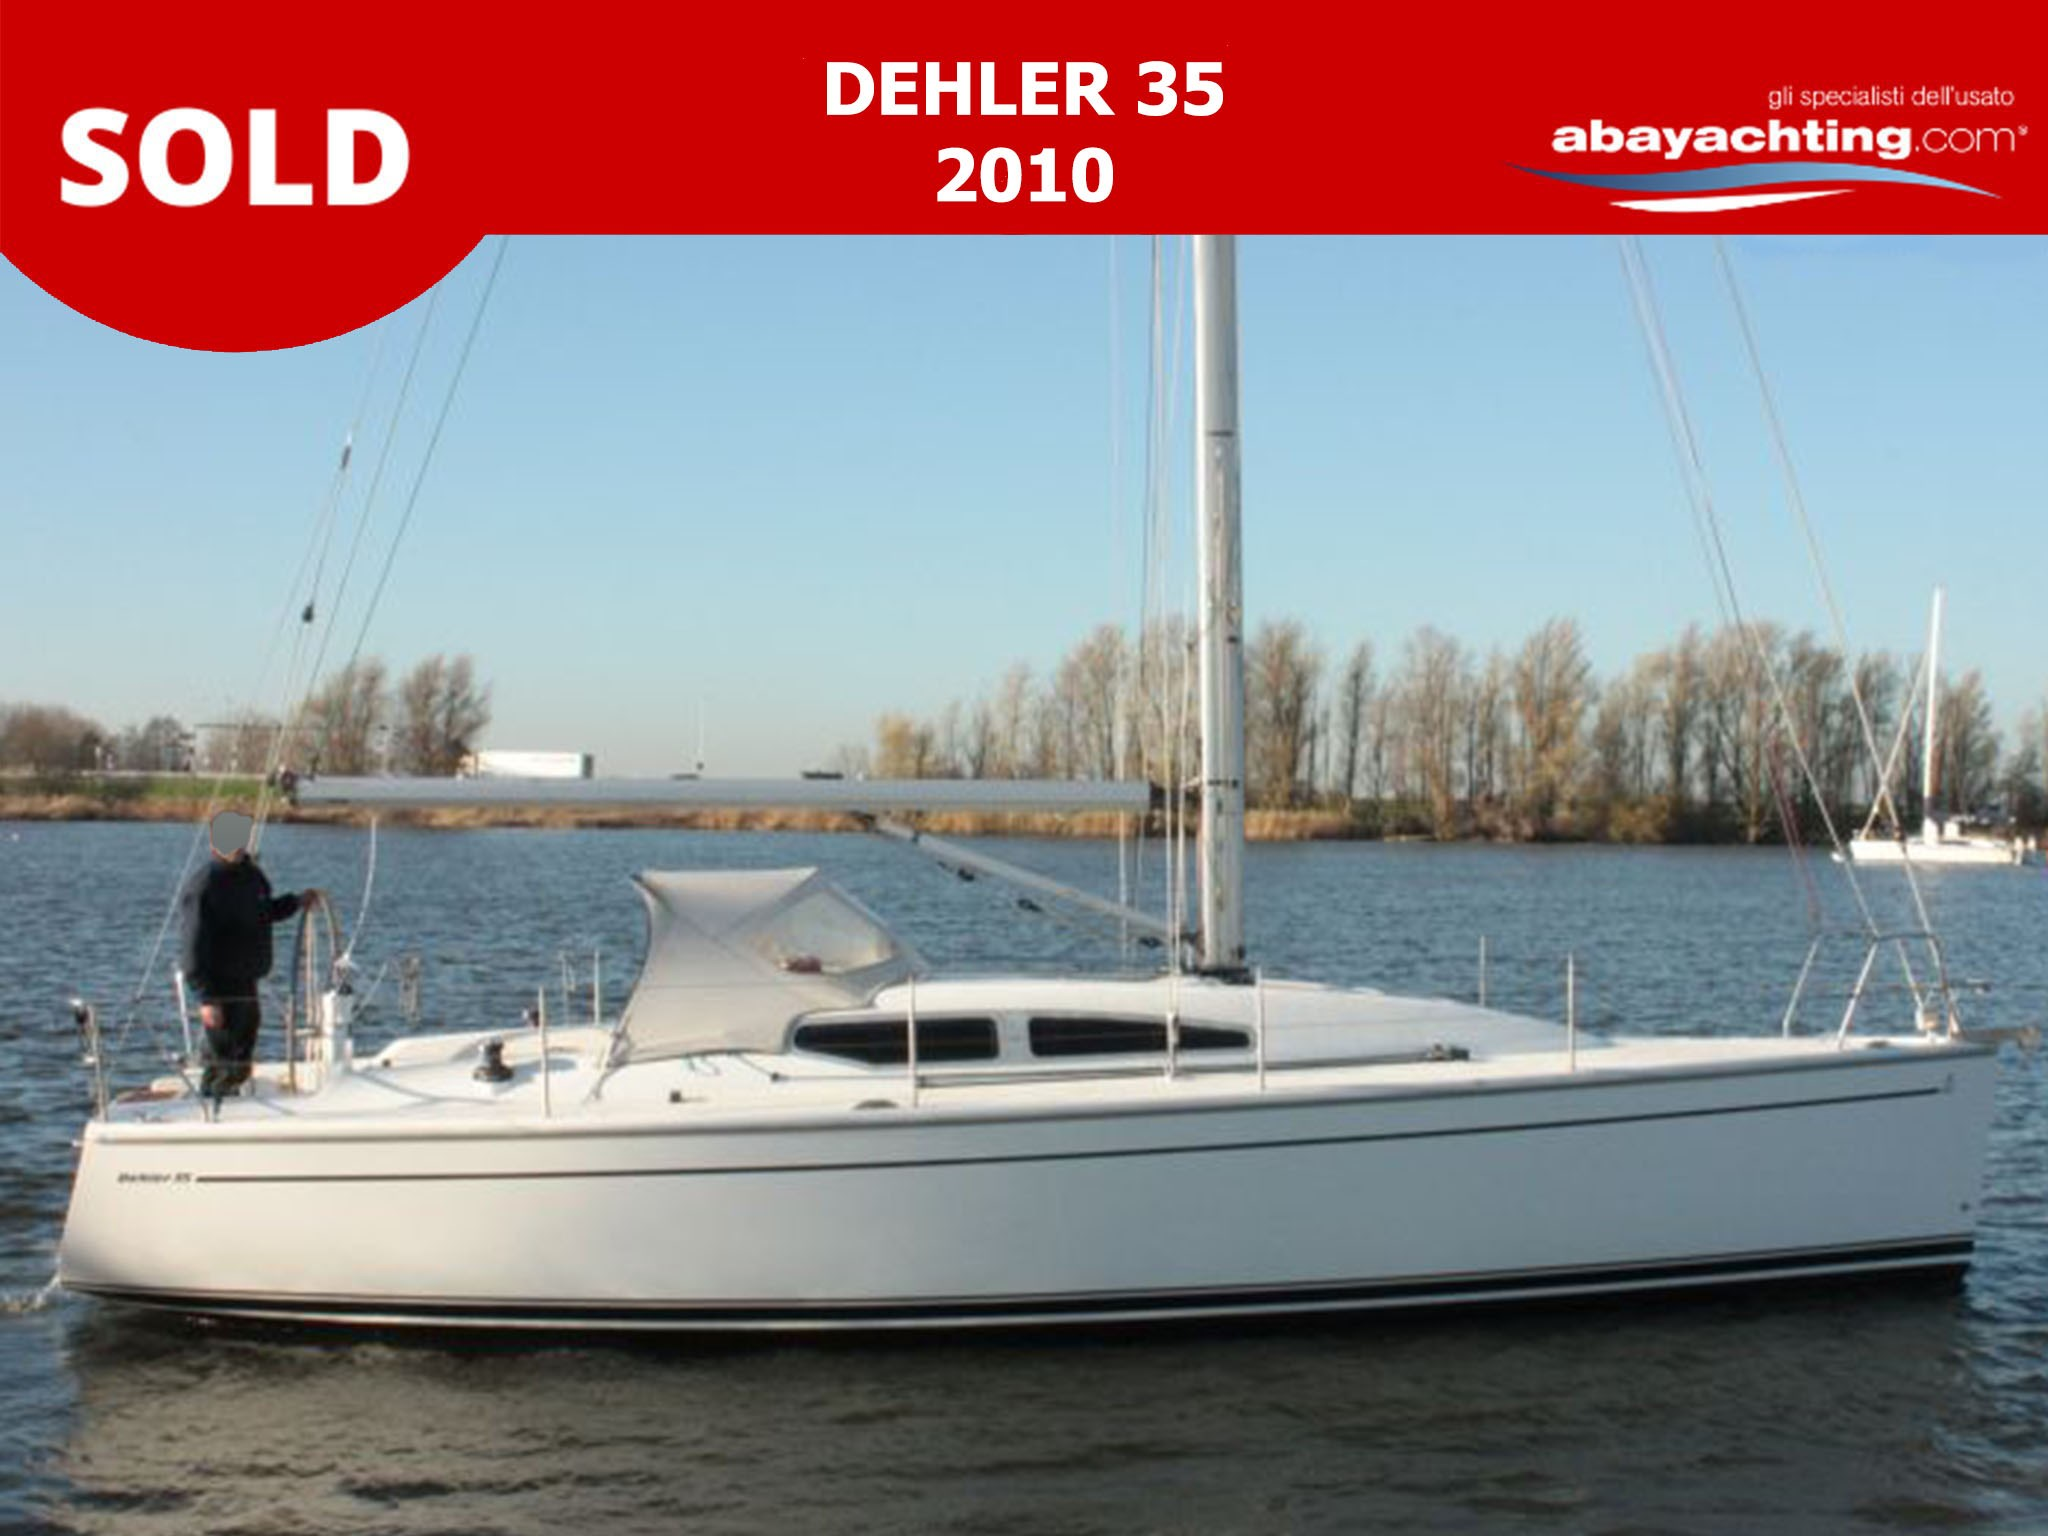 Dehler 35 sold